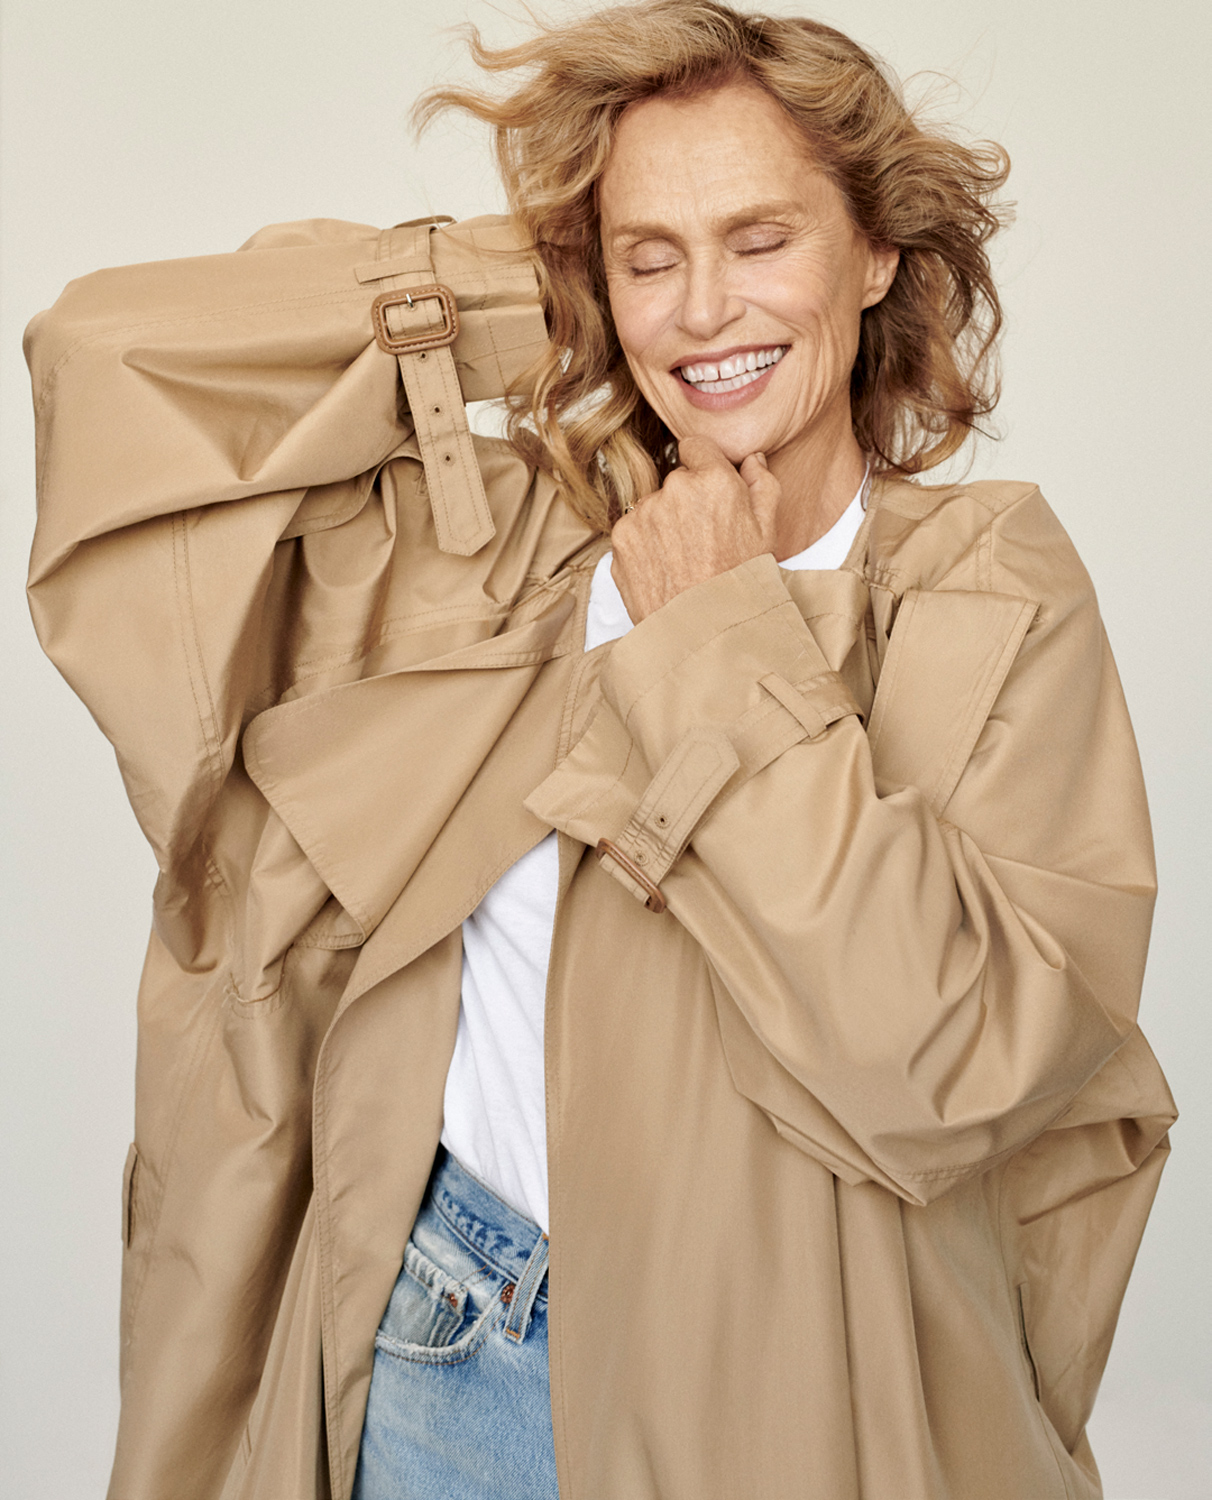 UNCONDITIONAL_7_LAUREN_HUTTON-6.JPG